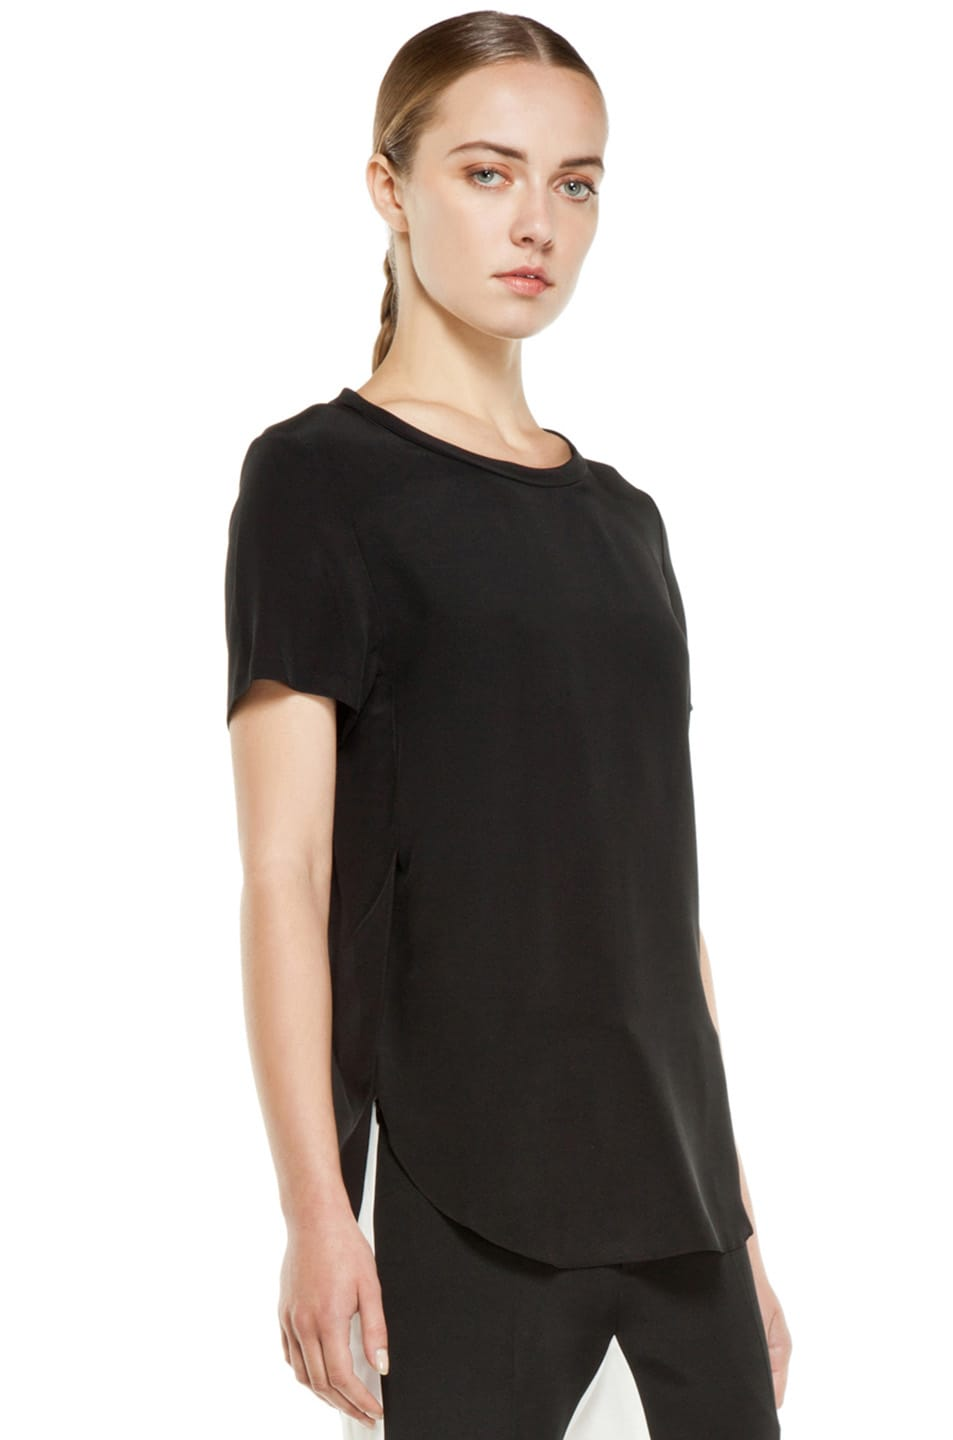 Image 3 of 3.1 phillip lim Silk Overlapped Side Tee in Black